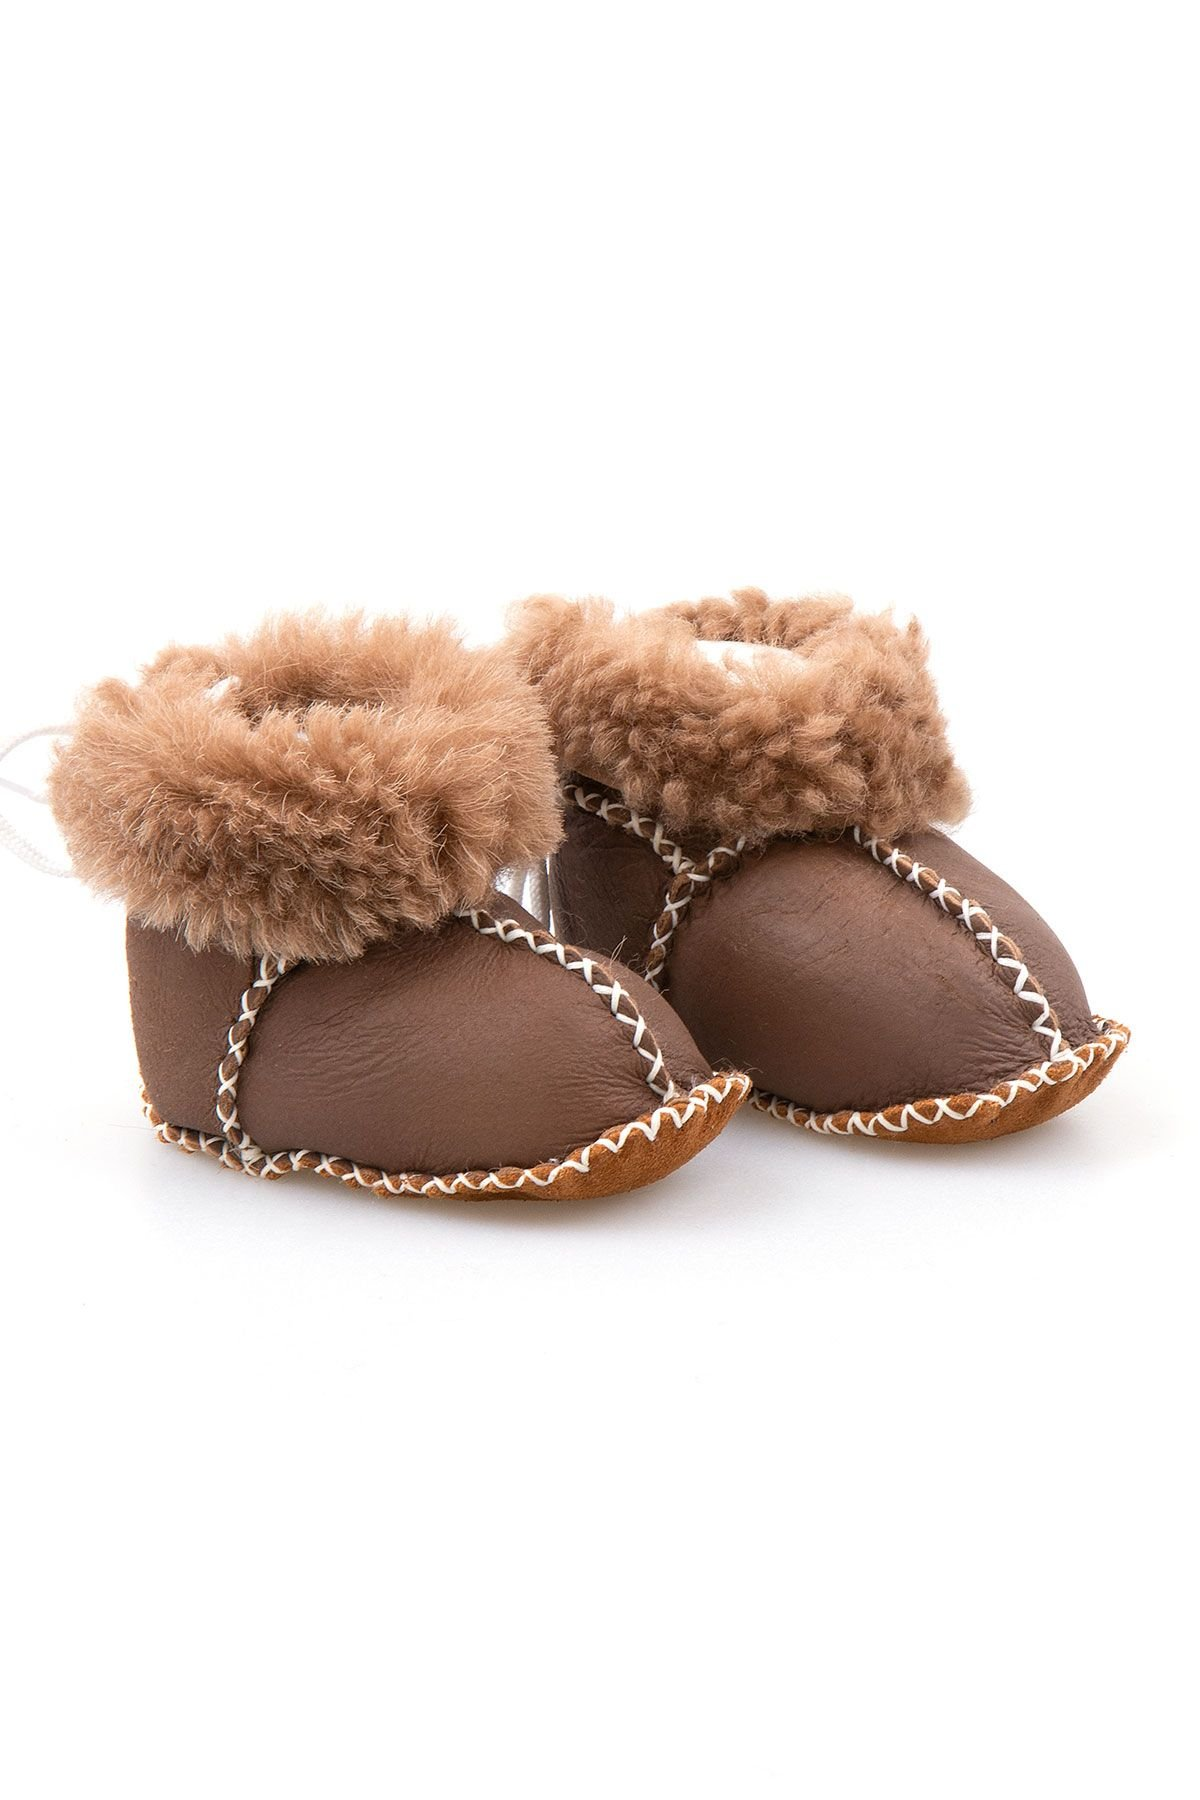 Pegia Shearling Baby's Booties 141114 Light Brown